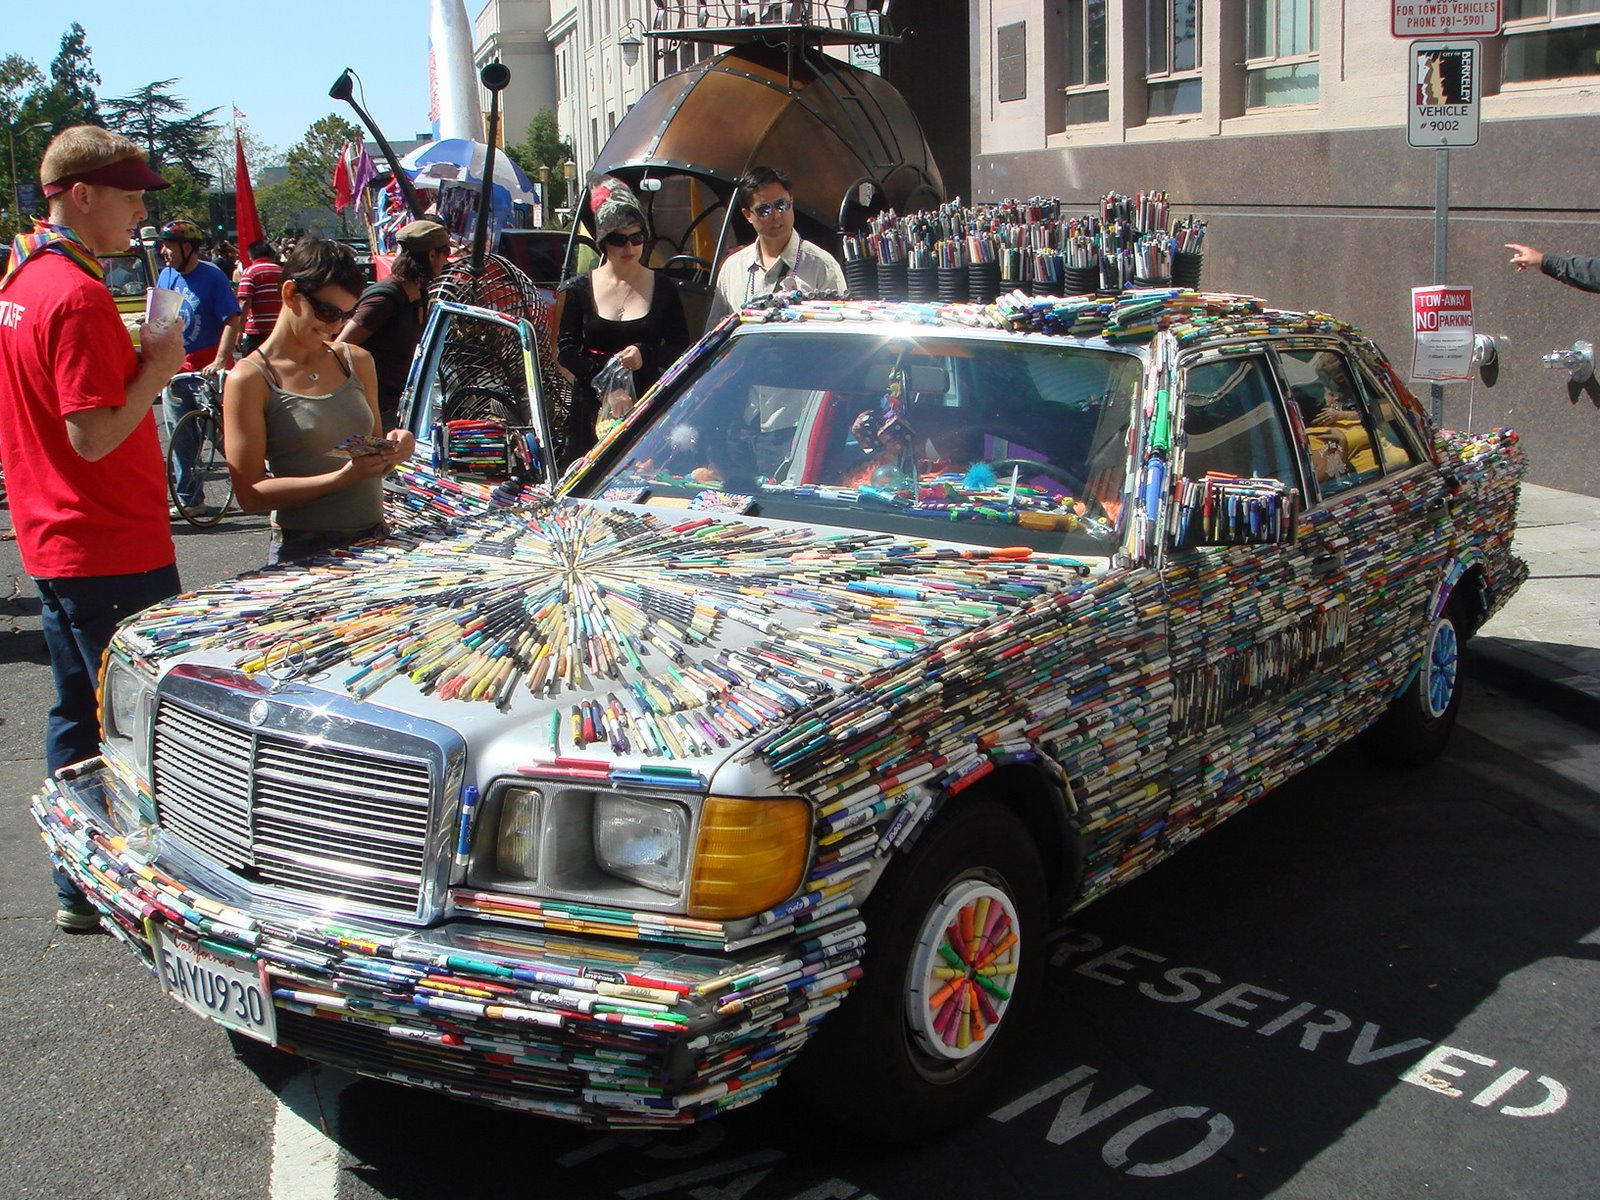 The Pen Guy and the Mercedes Pens Art Car in Berkeley